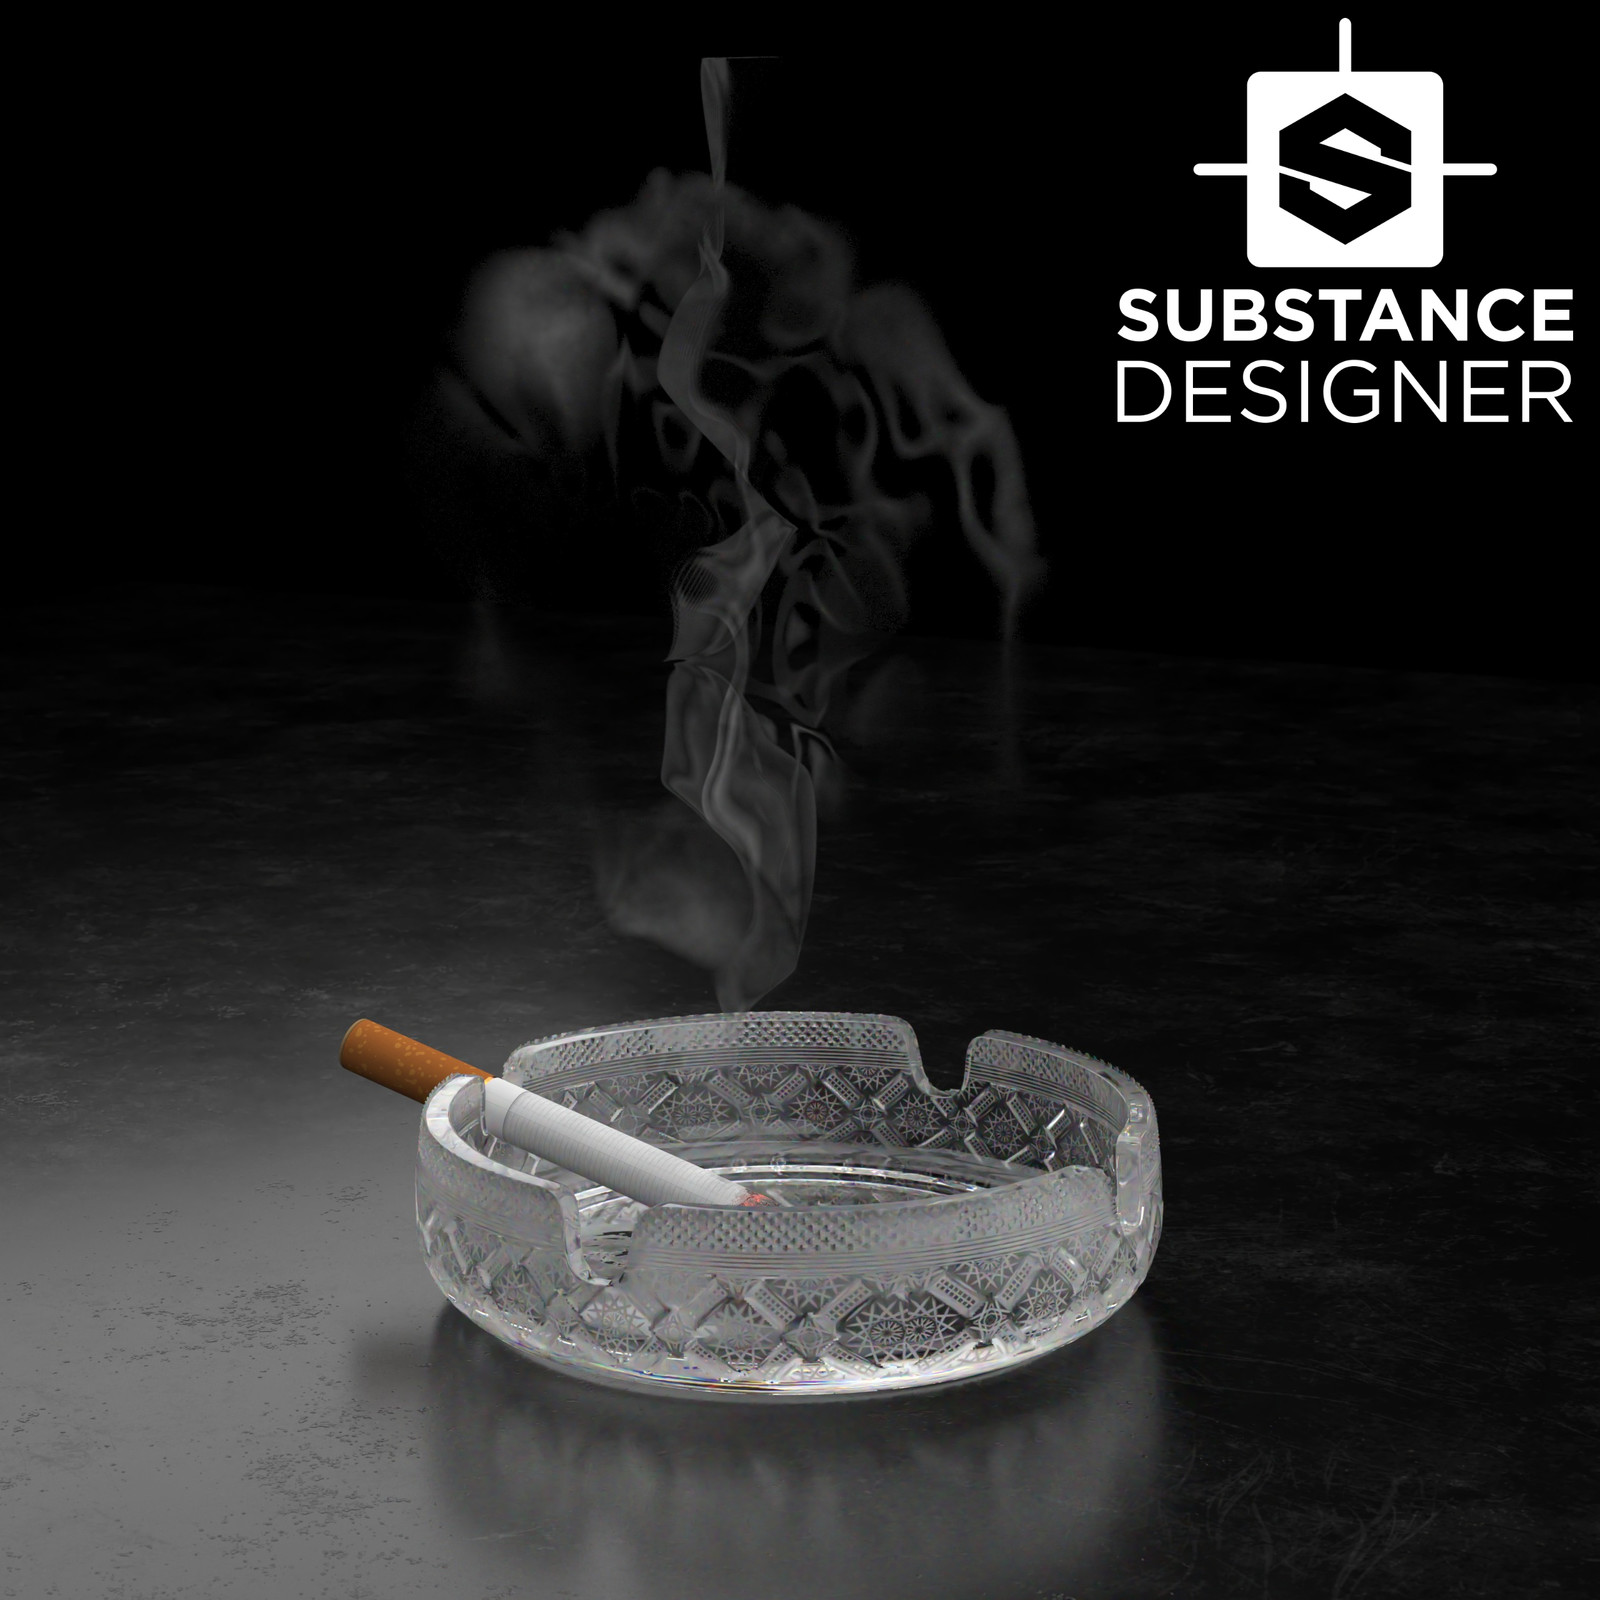 Cigarette & Smoke Substance